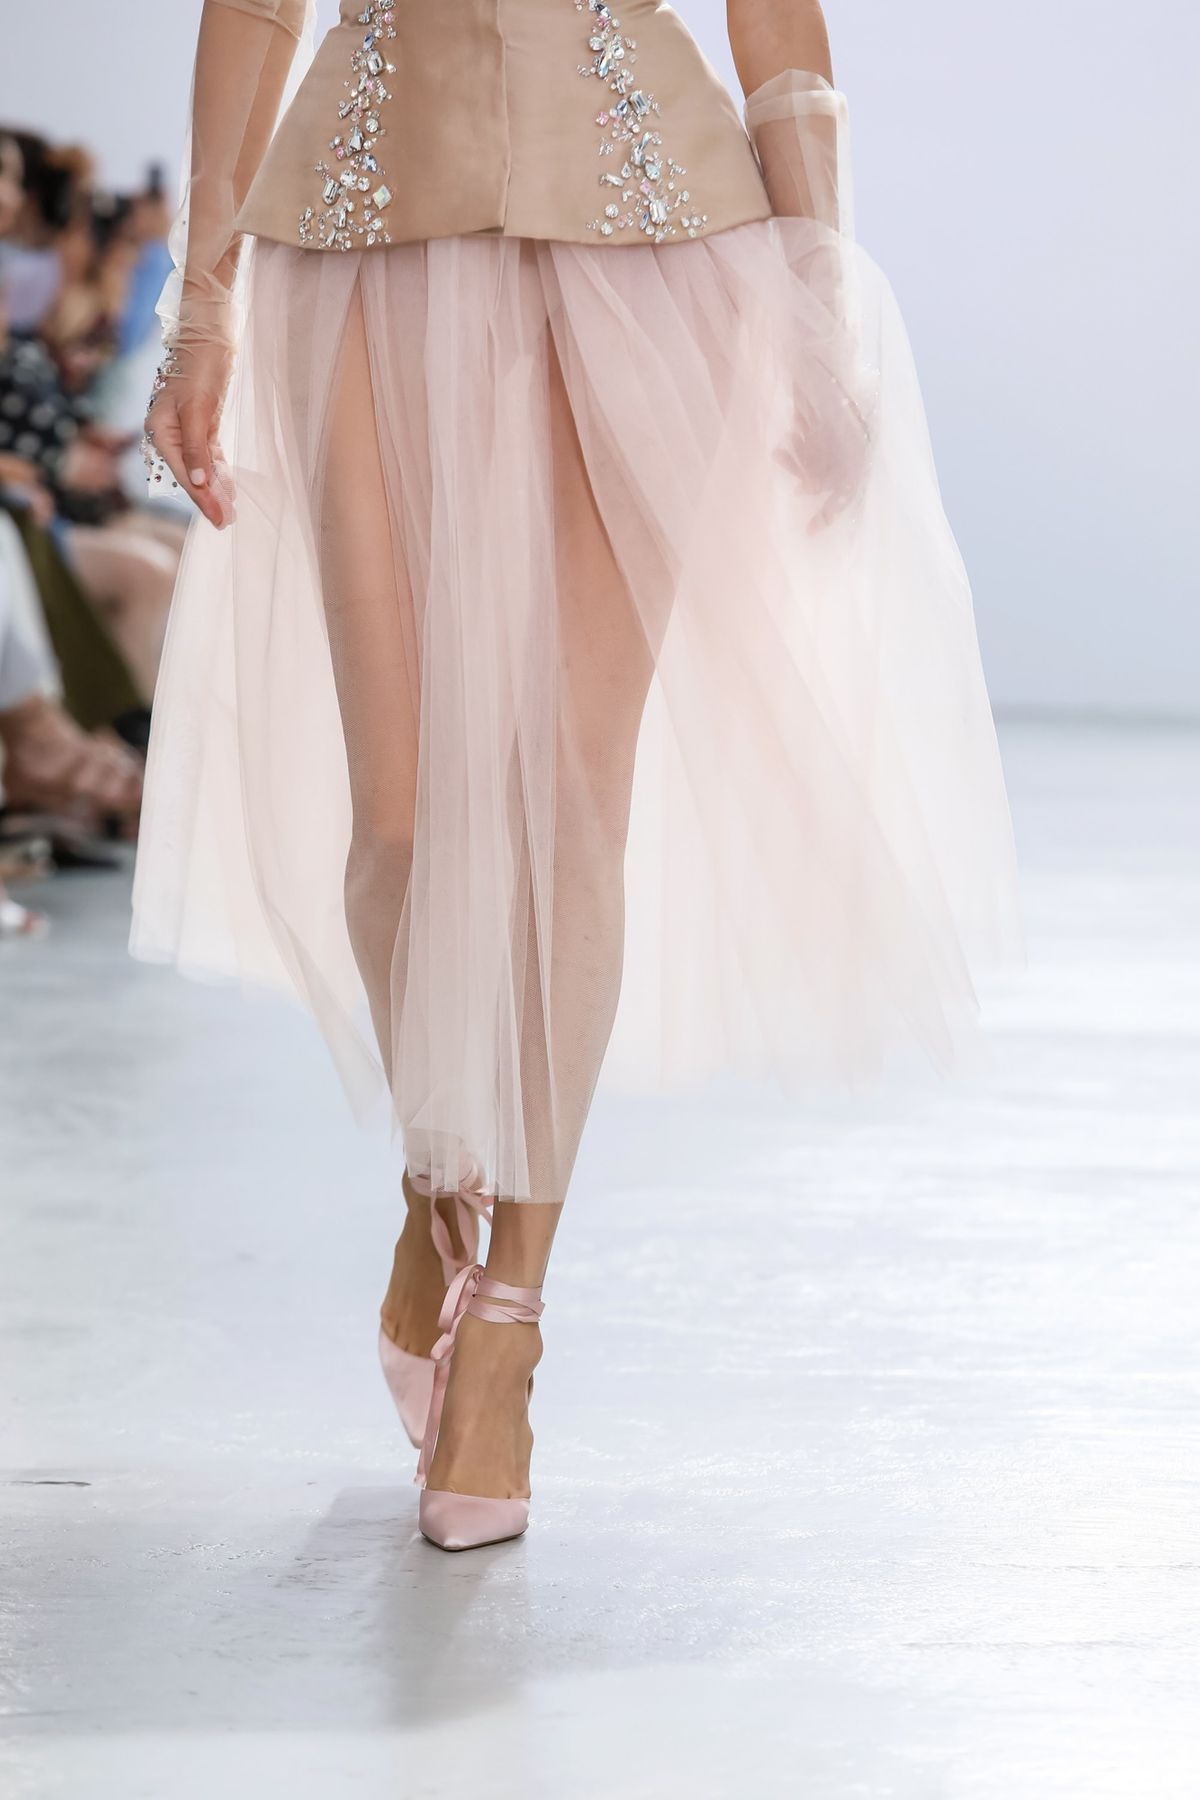 Lacetulle: Celia Kritharioti  Fall/Winter 2019 Couture